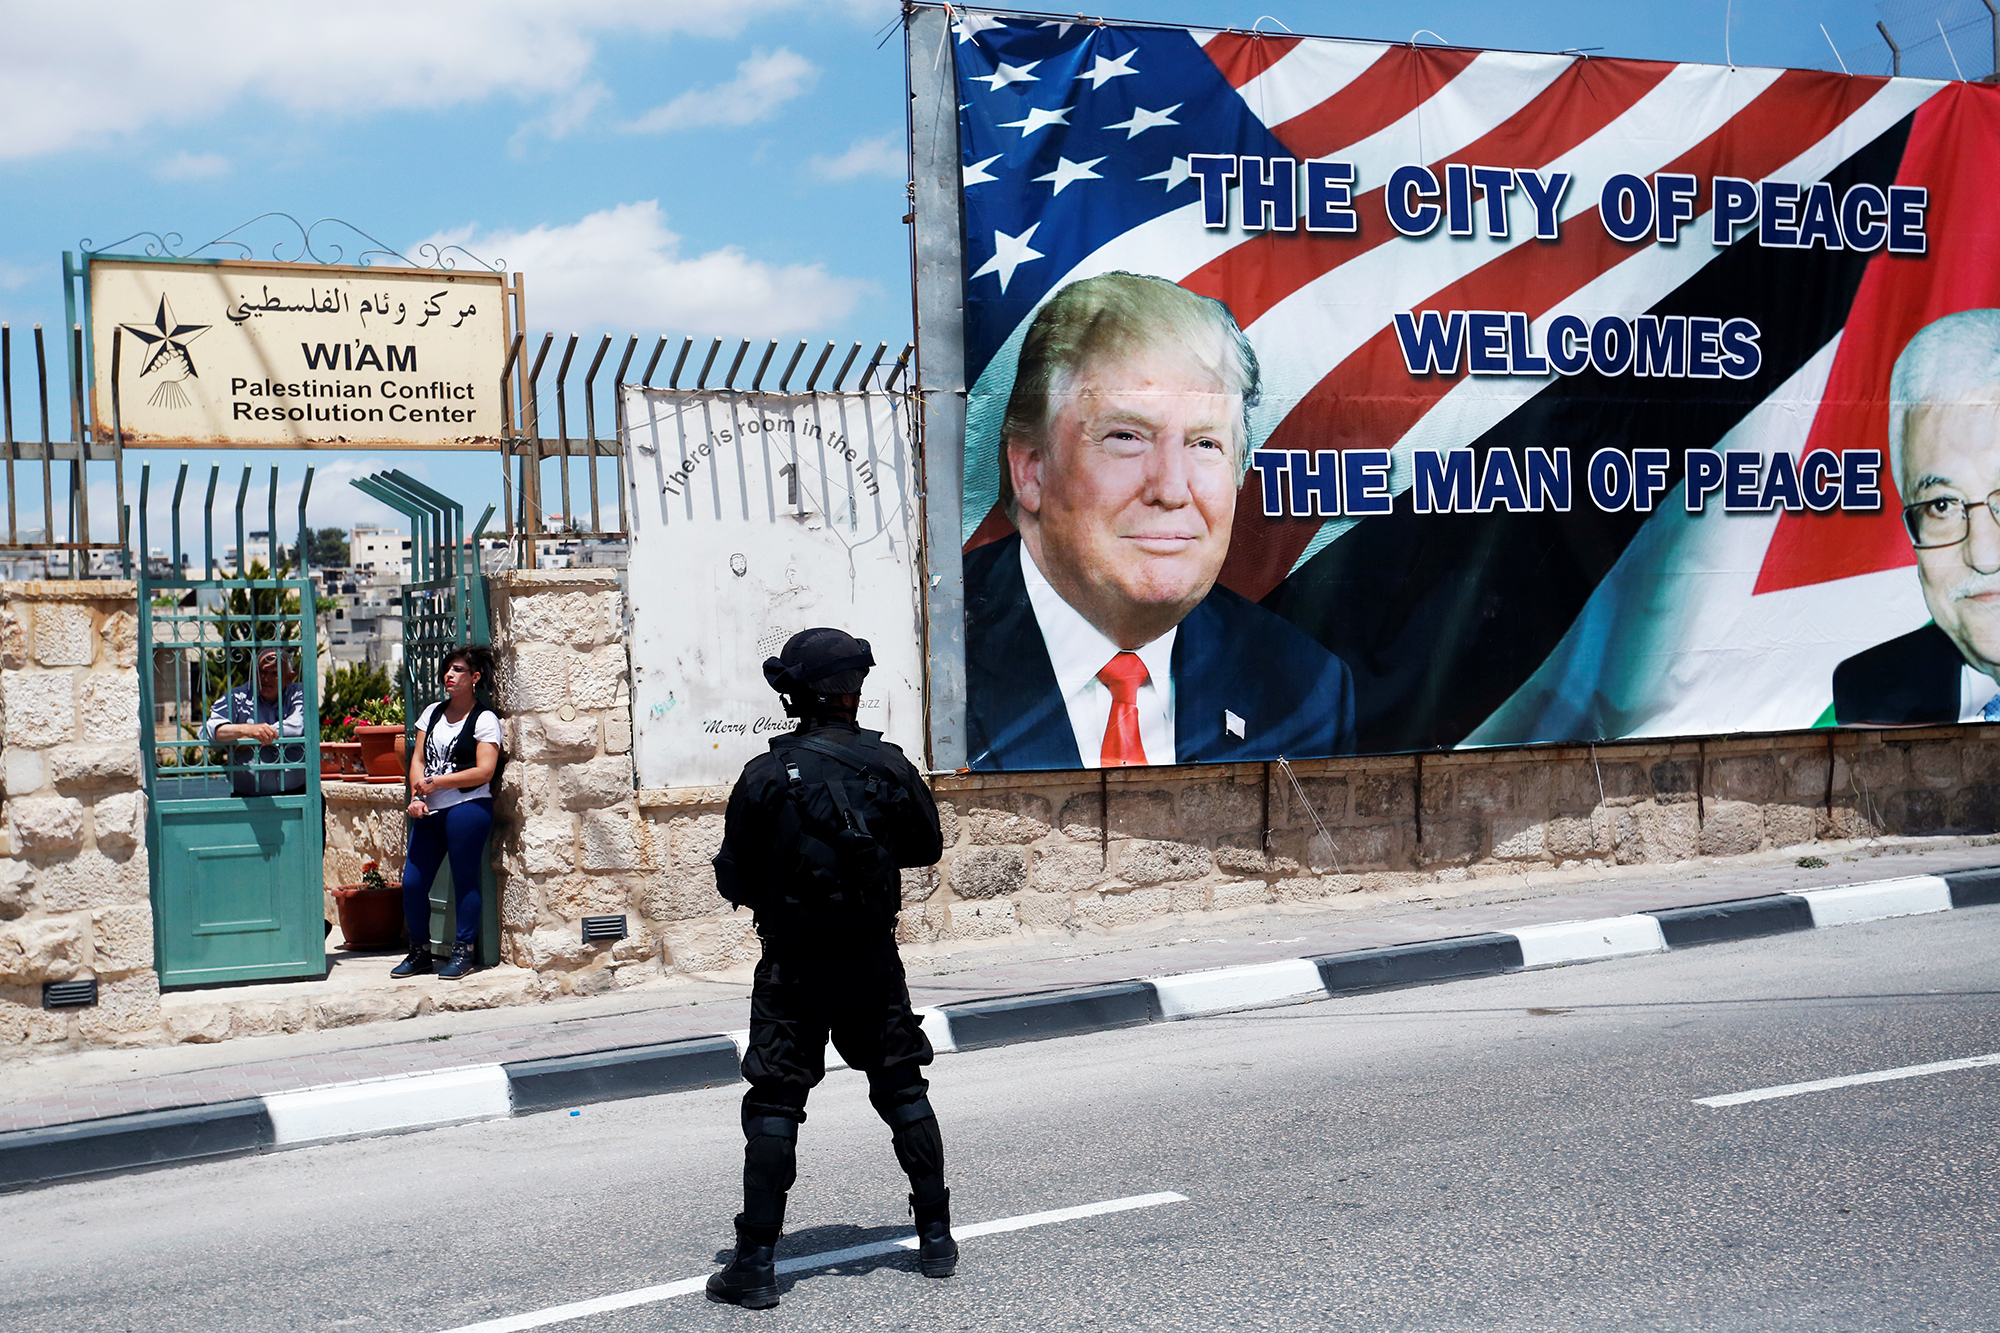 A soldier stands guard over a route as people watch Donald Trump's motorcade carry him back to Jerusalem after his meeting with Palestinian Authority President Mahmoud Abbas in the West Bank city of Bethlehem, on May 23, 2017.